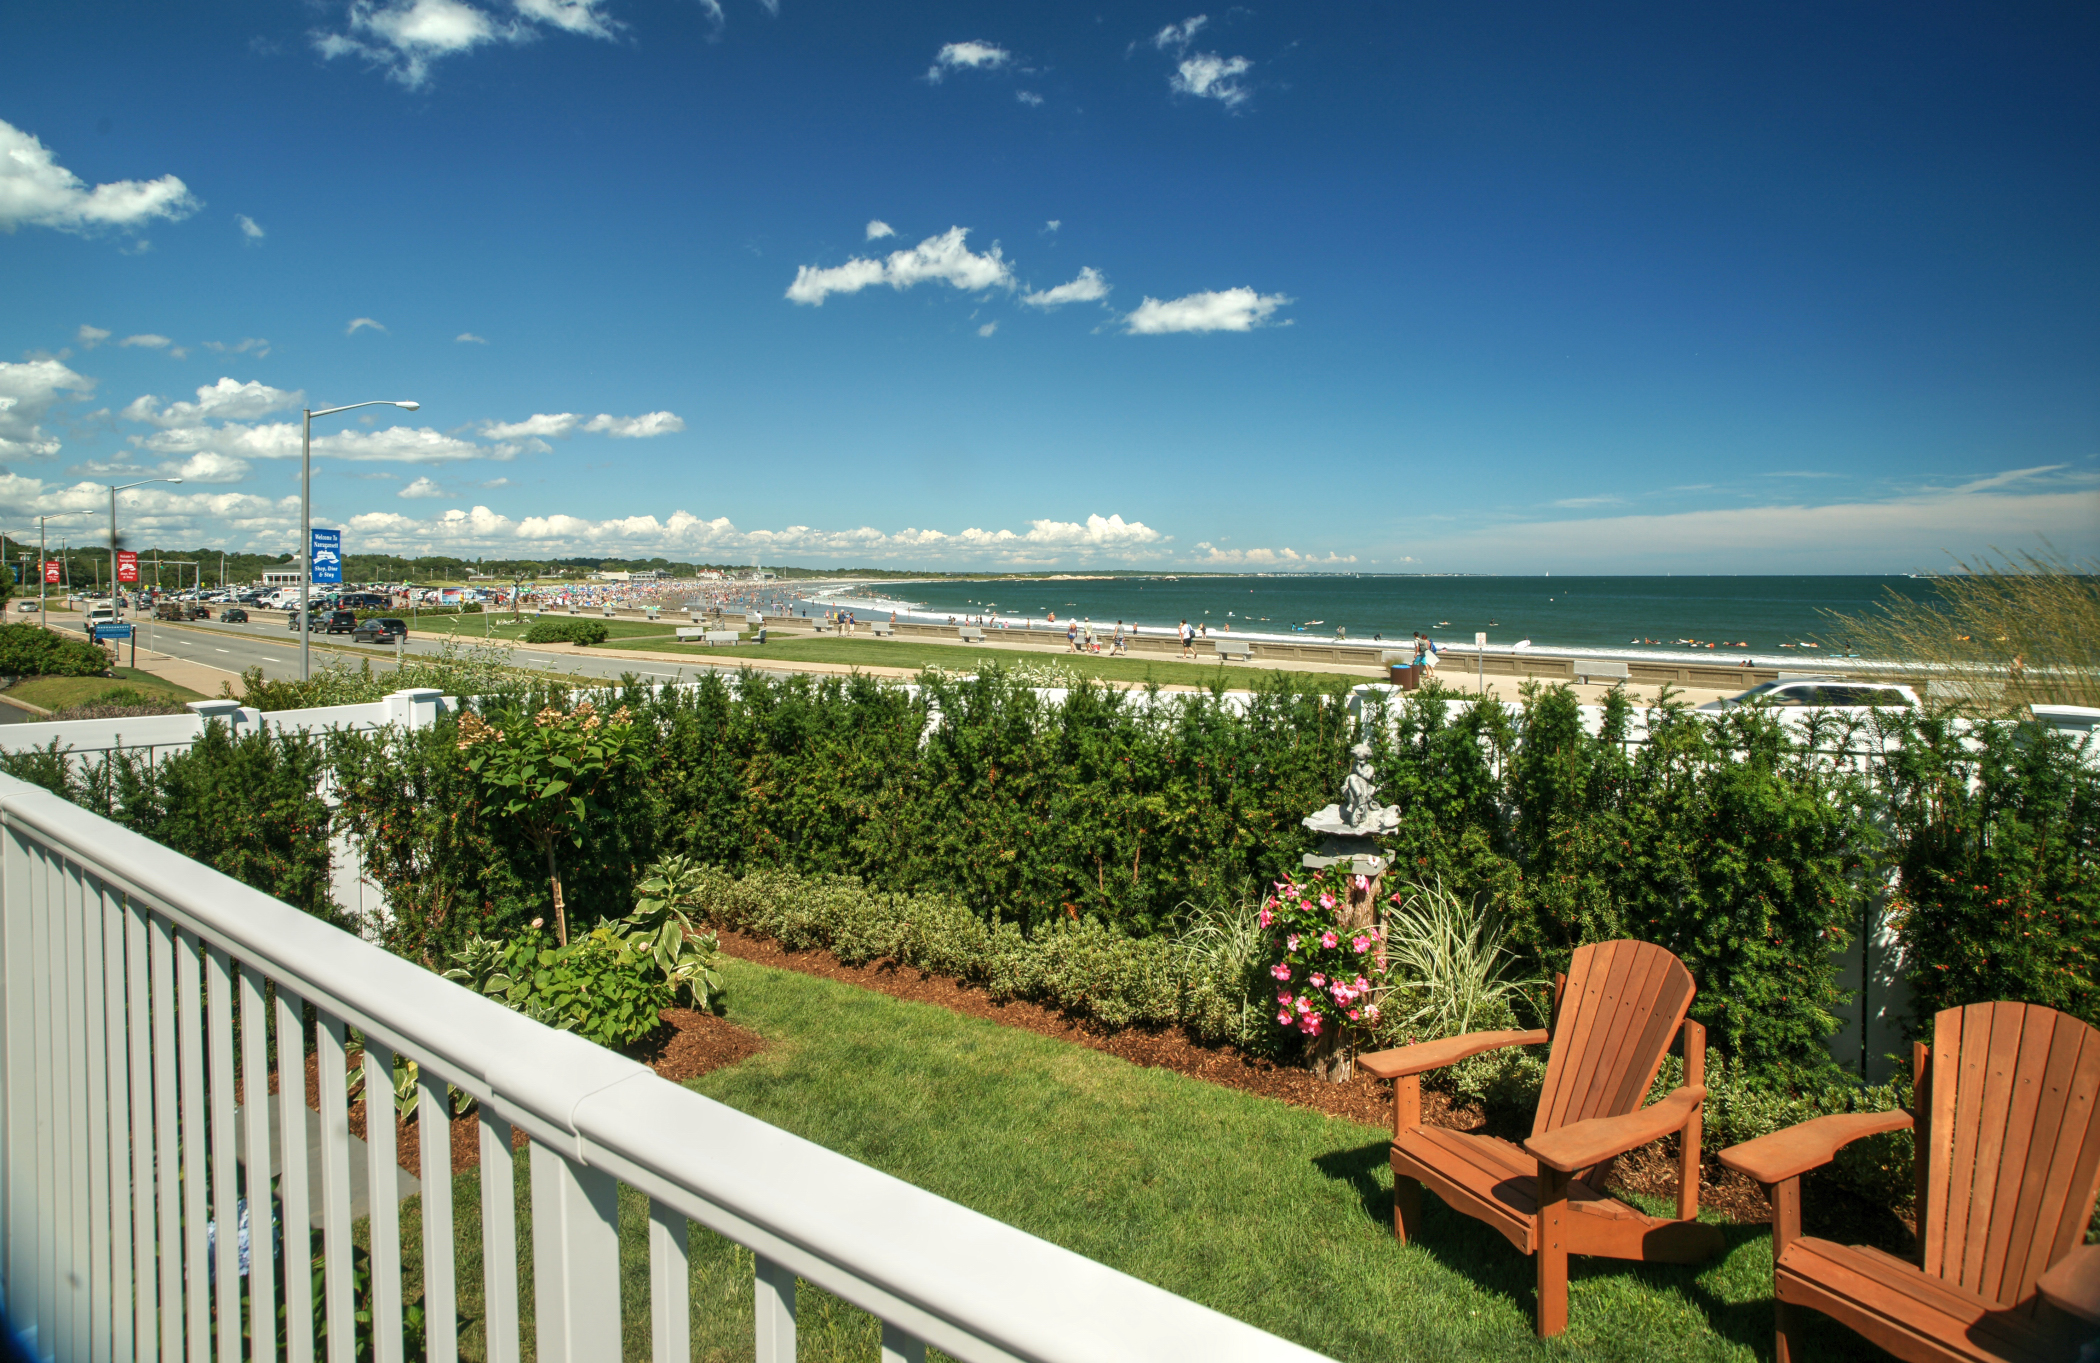 RECORD CONDO SALE IN NARRAGANSETT